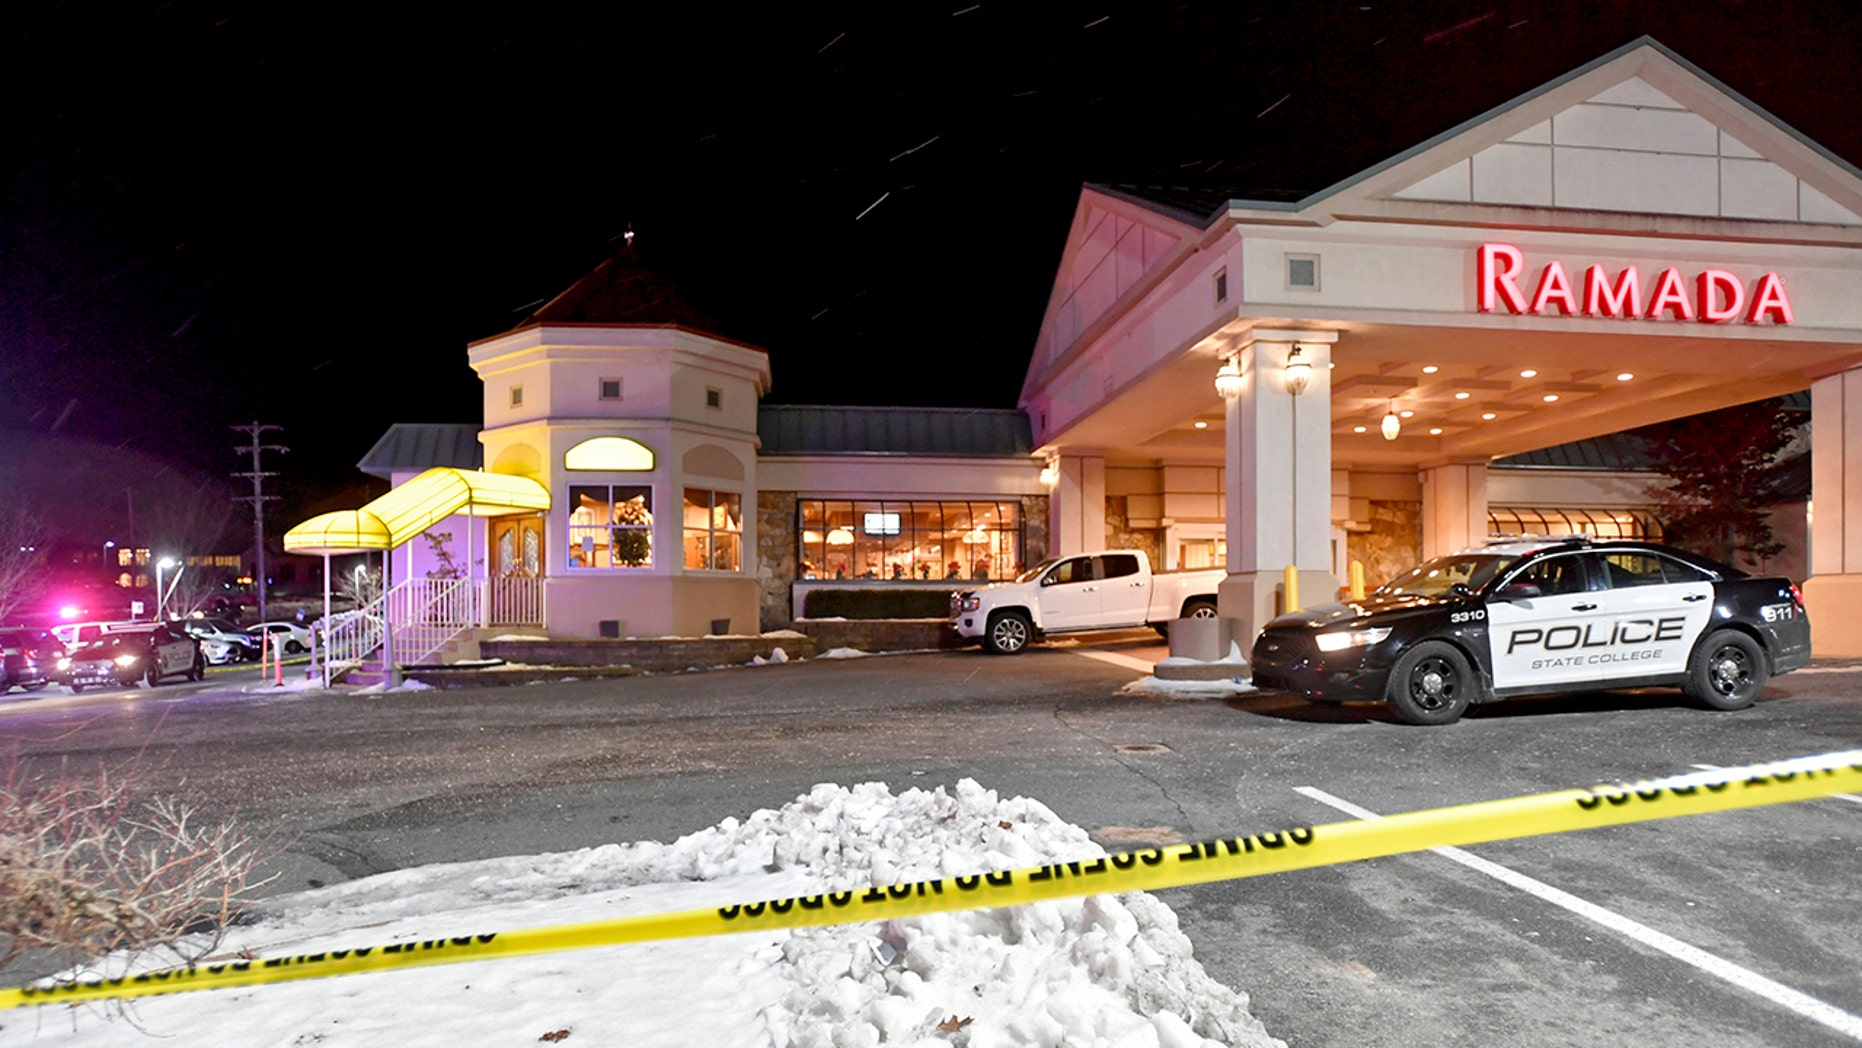 State College Police responded to a shootout at PJ Harrigan's Bar & Grill at the Ramada Inn Thursday, January 24, 2019, at State College, Pennsylvania (Abby Drey / Center Daily Times via AP)